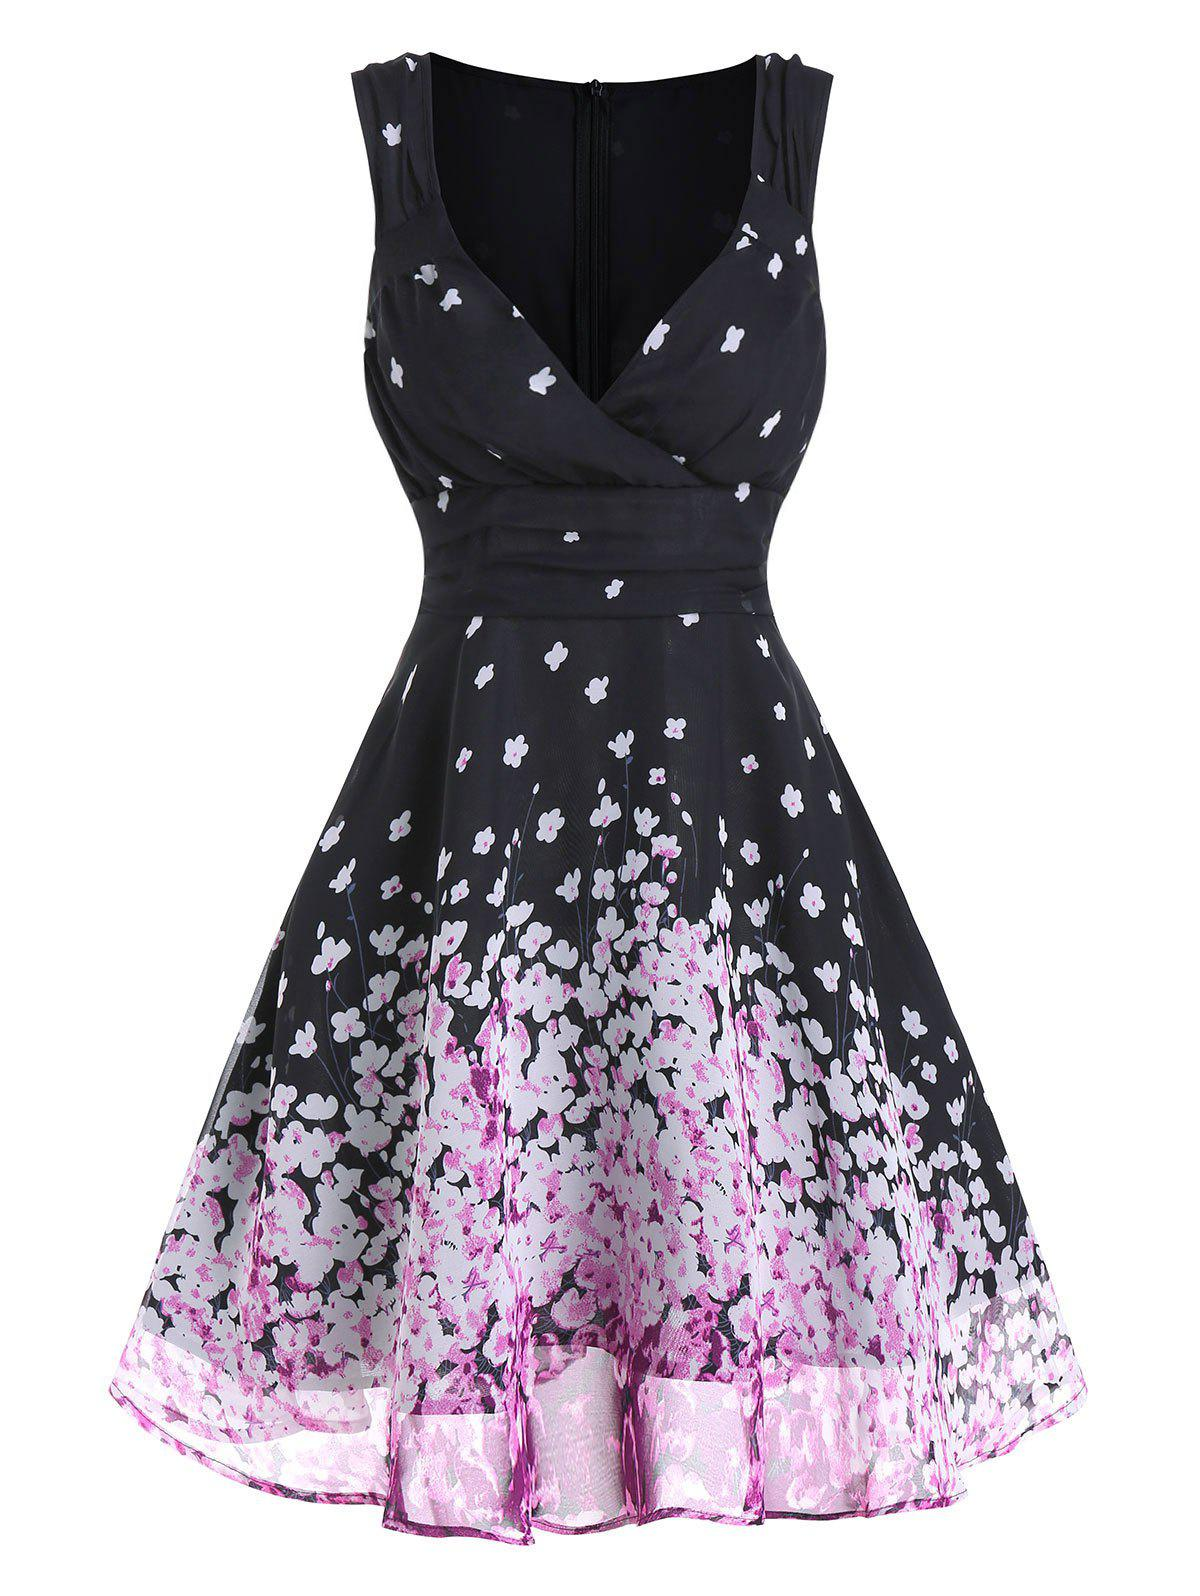 Tiny Floral Print Sleeveless Ruched Chiffon Dress - BLACK XL